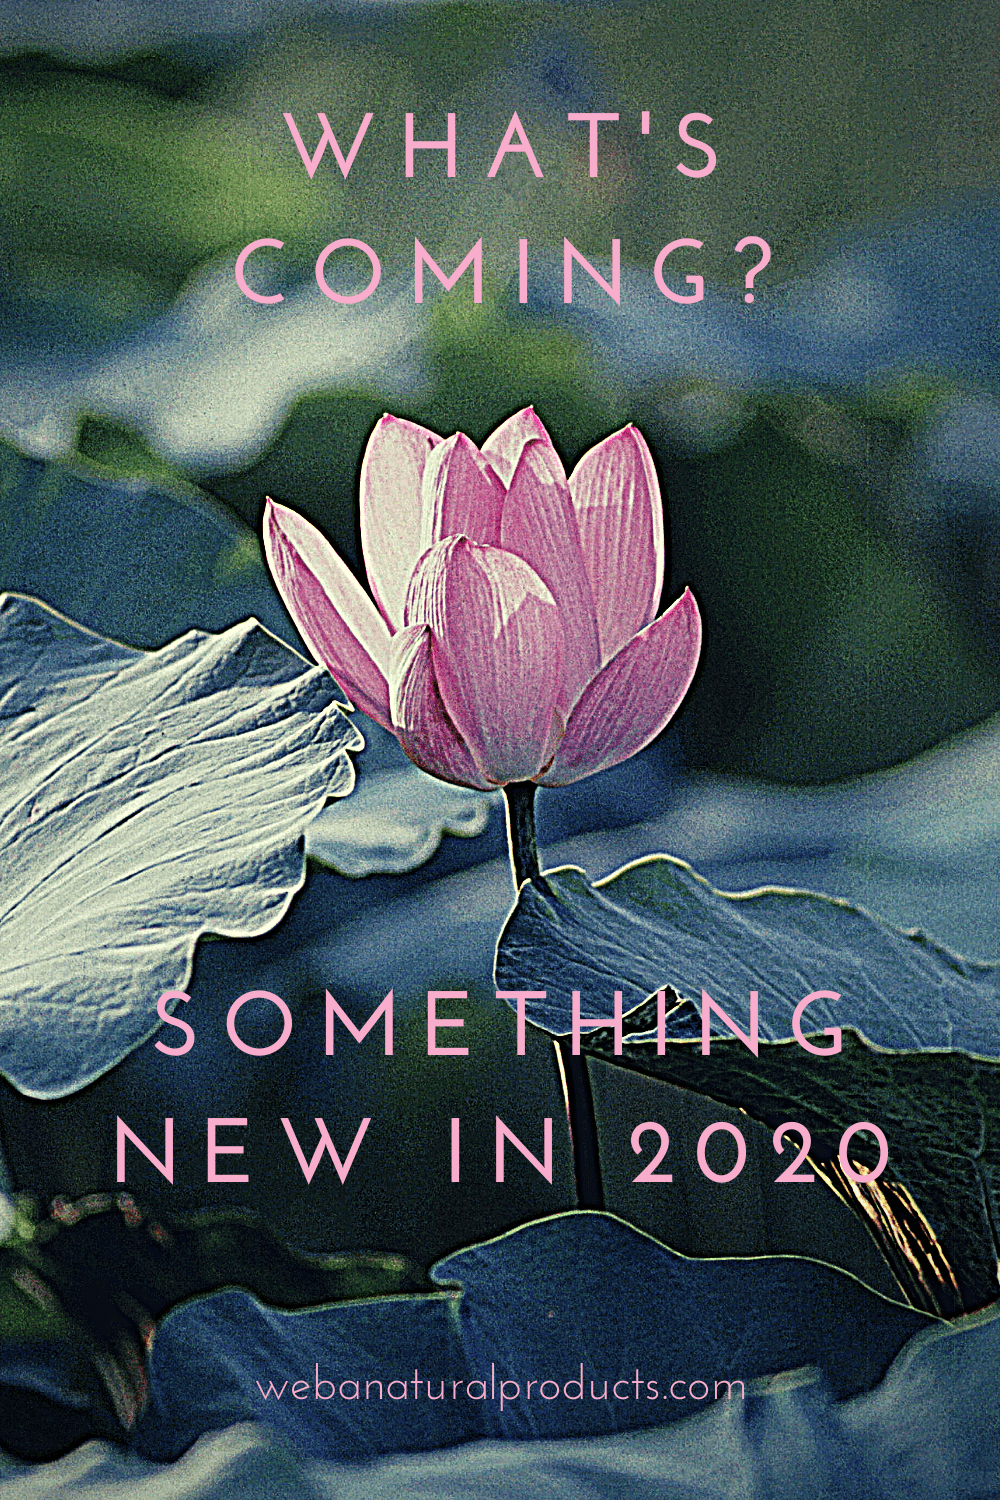 Whats New in 2020 WEBA Natural Products